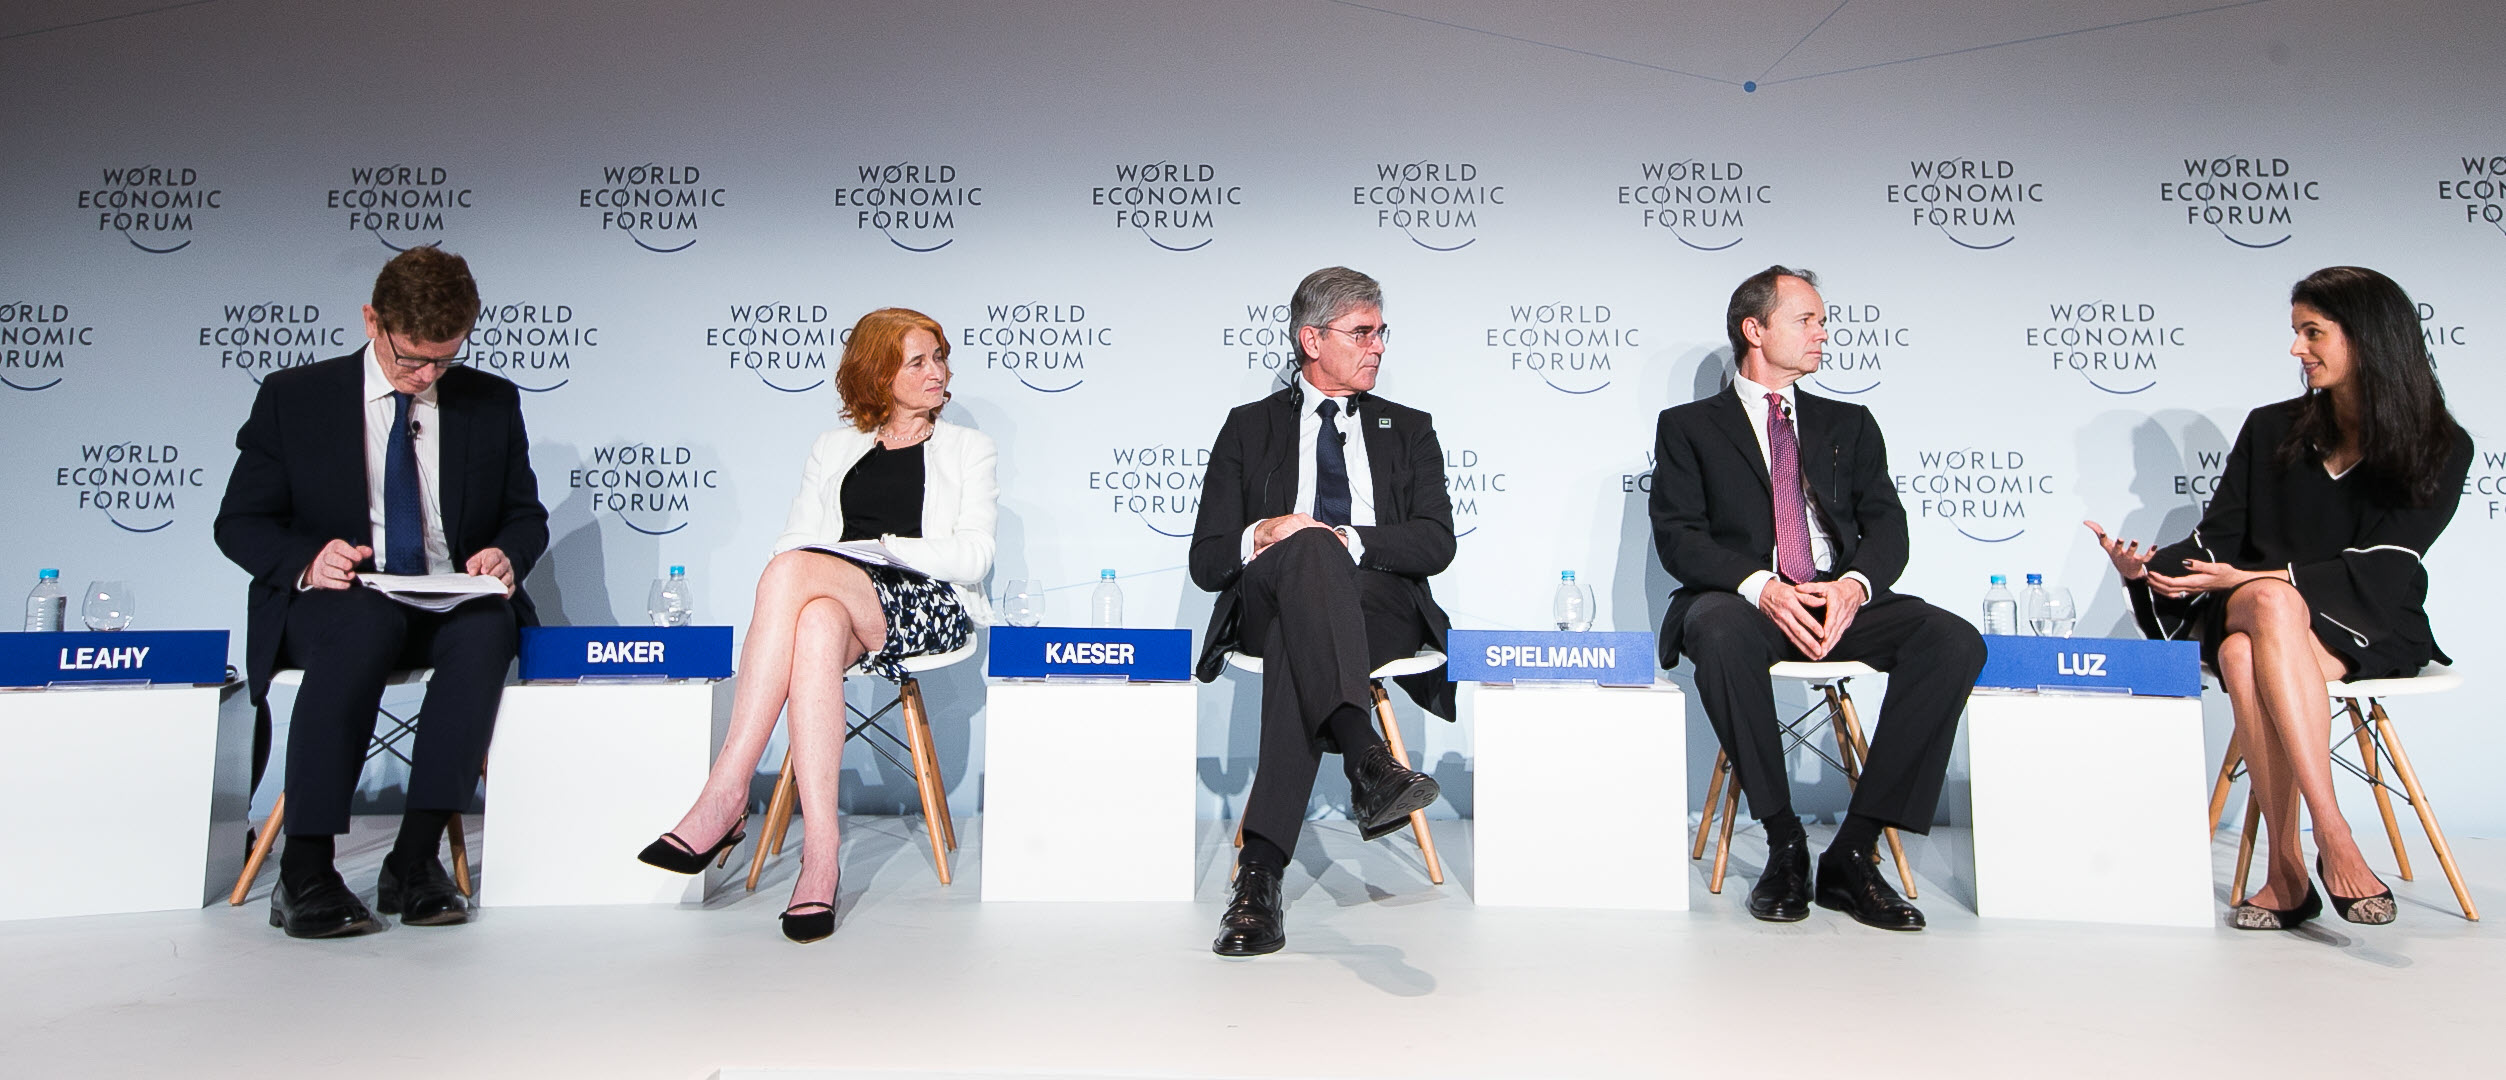 CPPIB Latin America head talks infrastructure at WEF - Panel